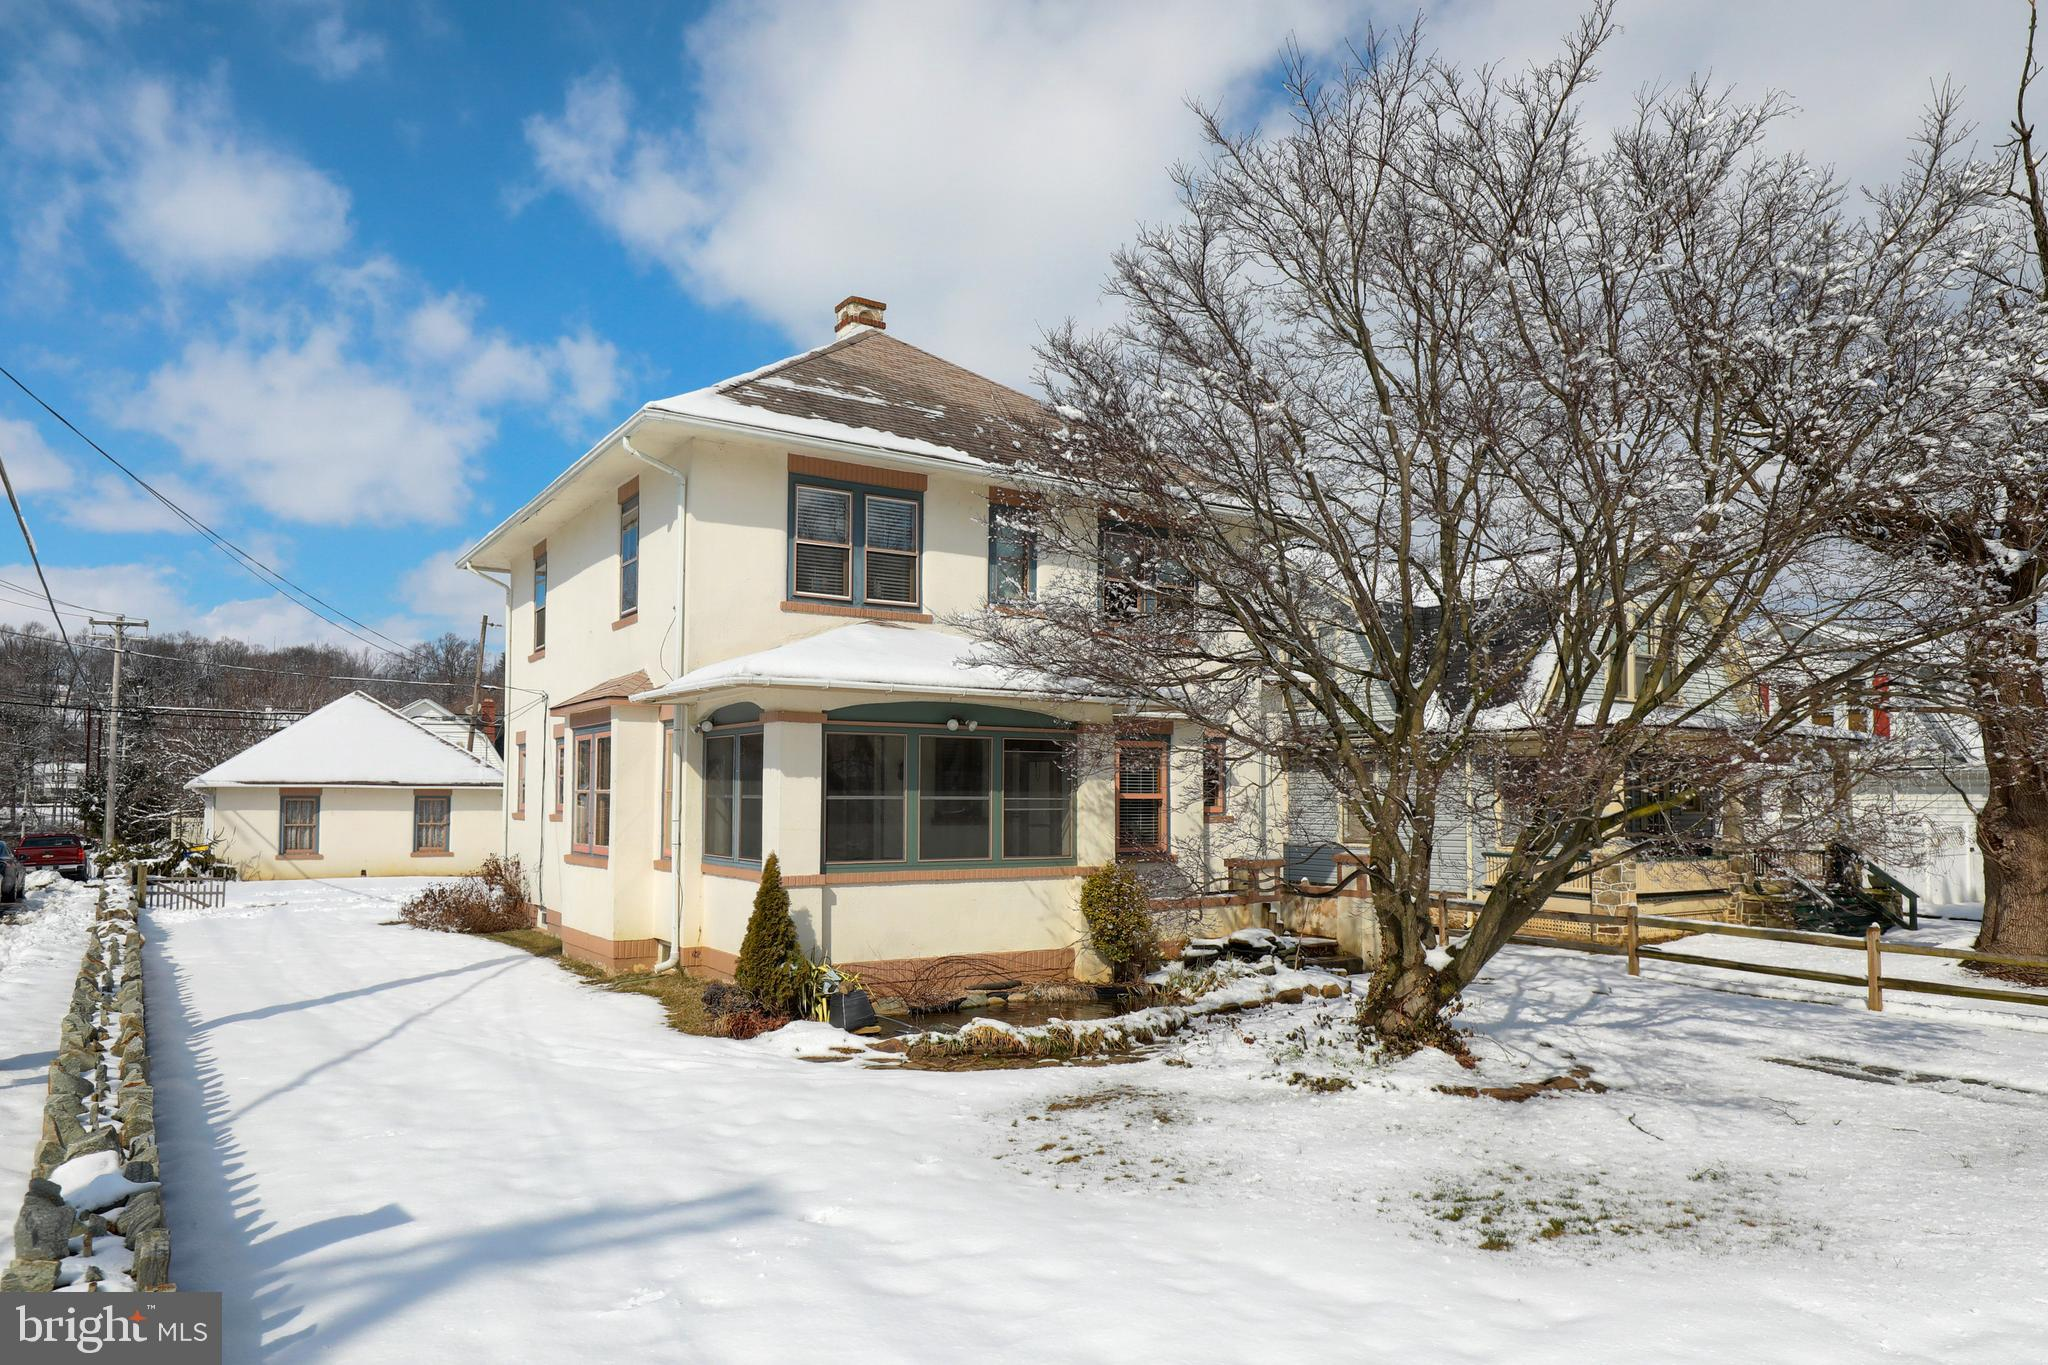 1928 VALLEY ROAD, PARKESBURG, PA 19365